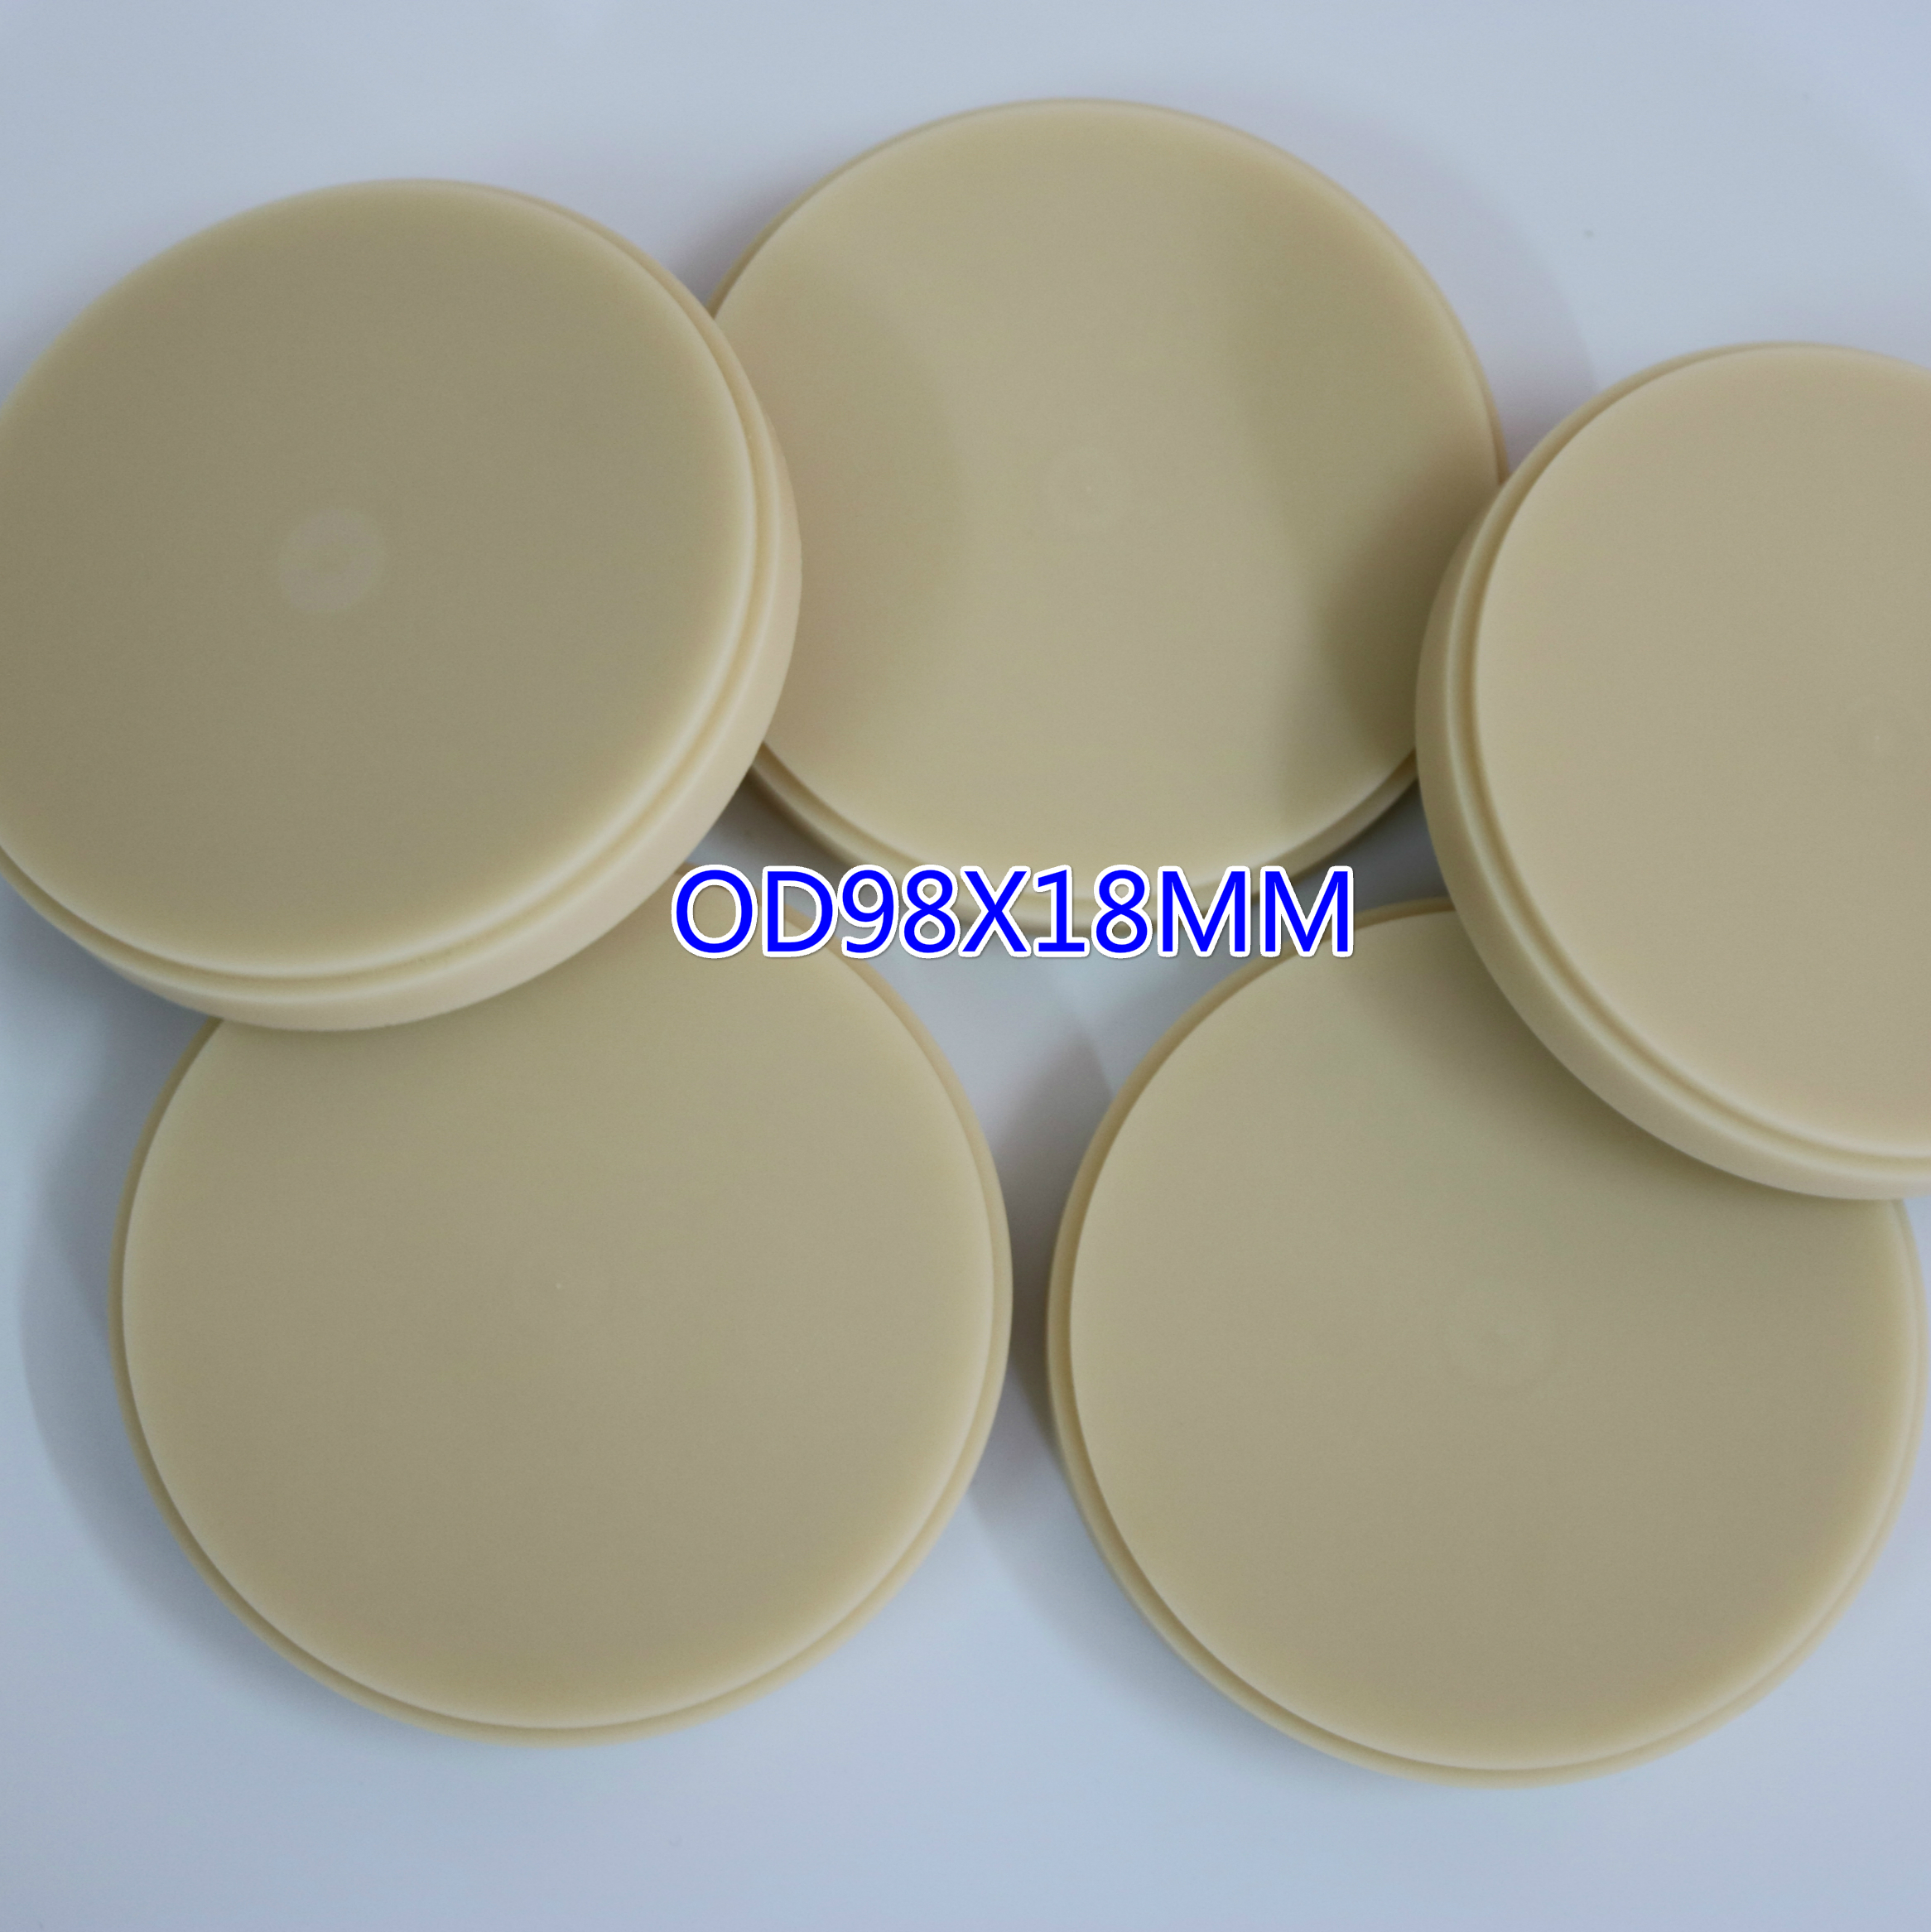 10Pieces Dental PMMA Blocks Disk Lab Material Temporary Crown Blank Discs Consumables A1 A2 A3 Transparent Acrylic Block